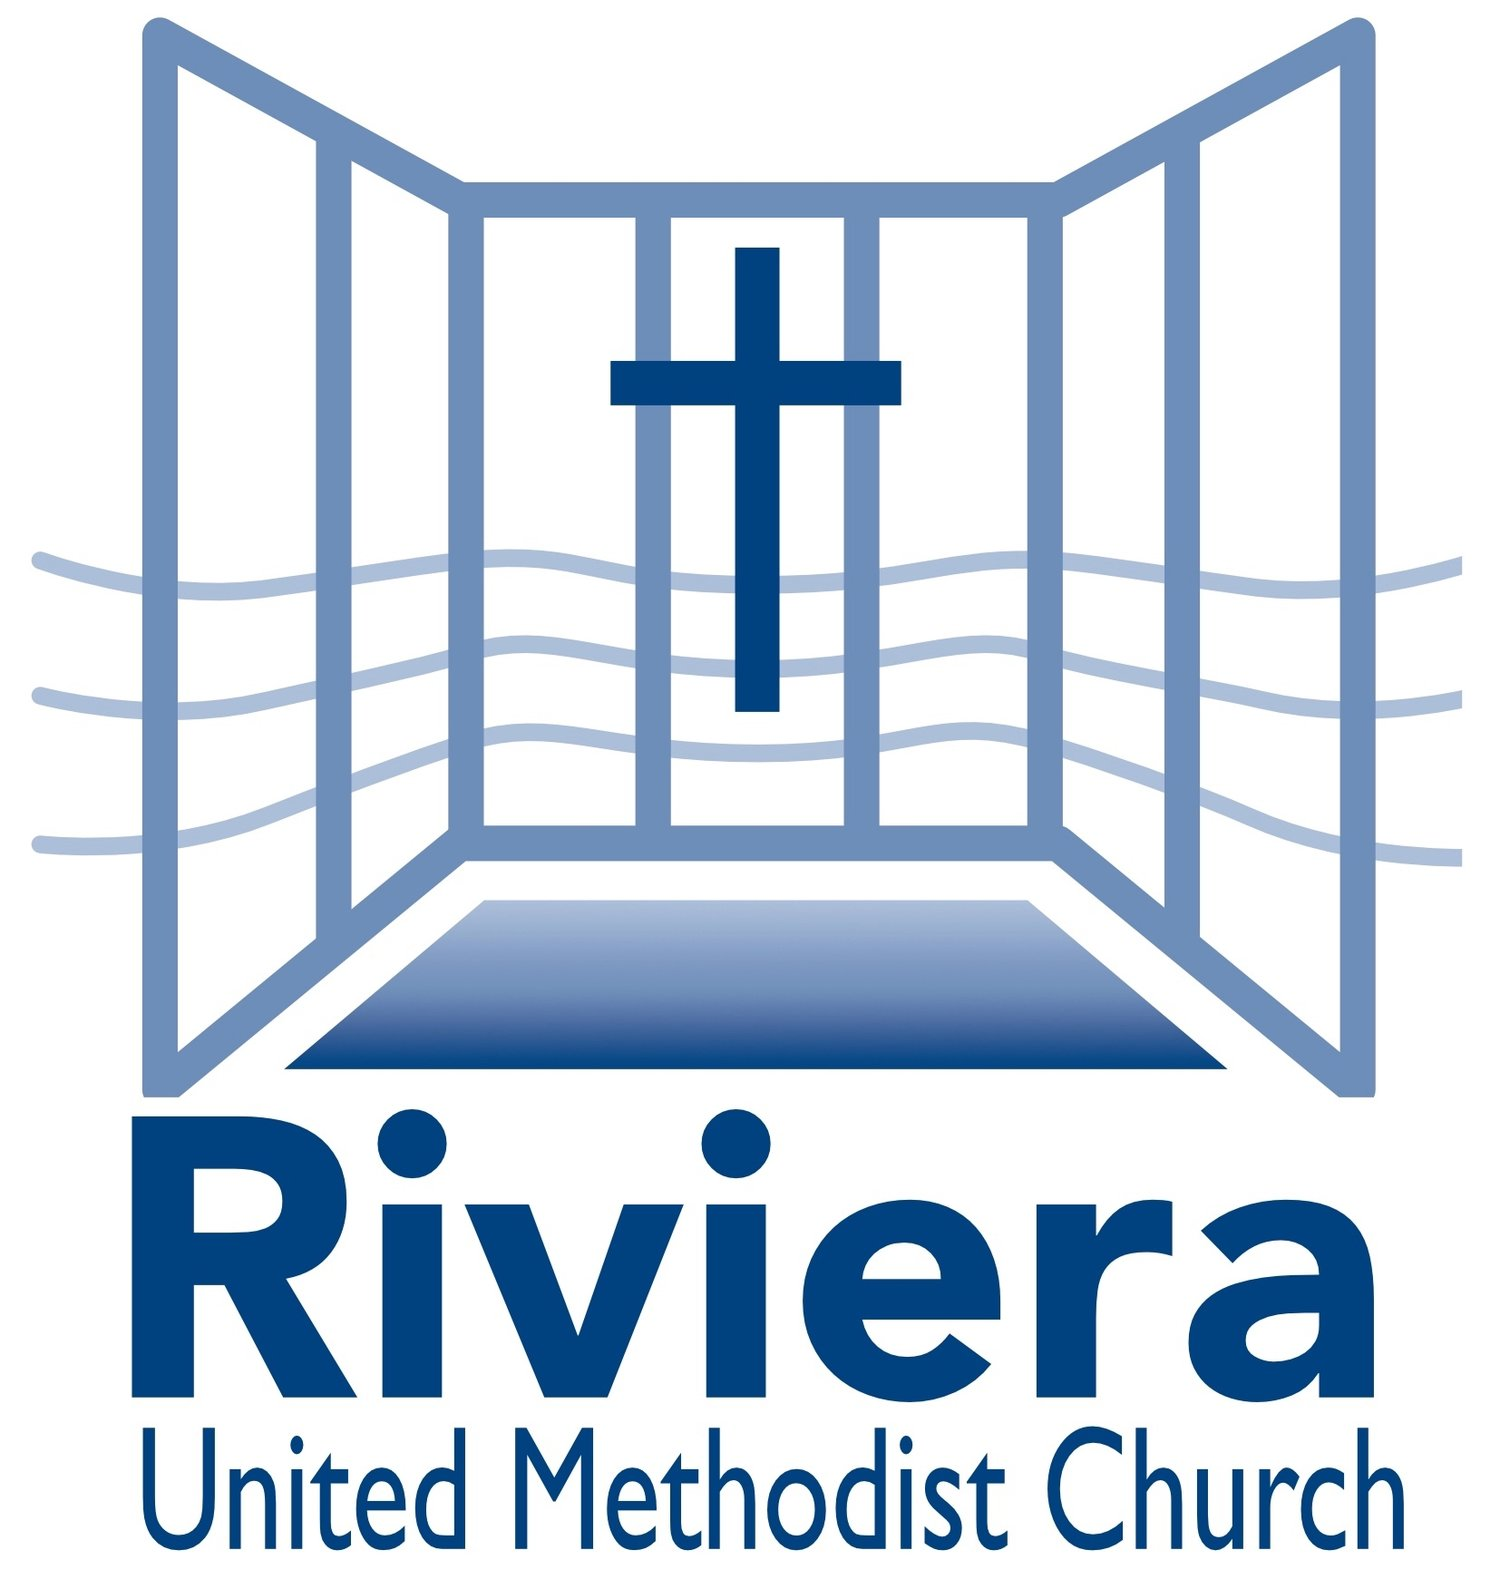 Riviera United Methodist Church